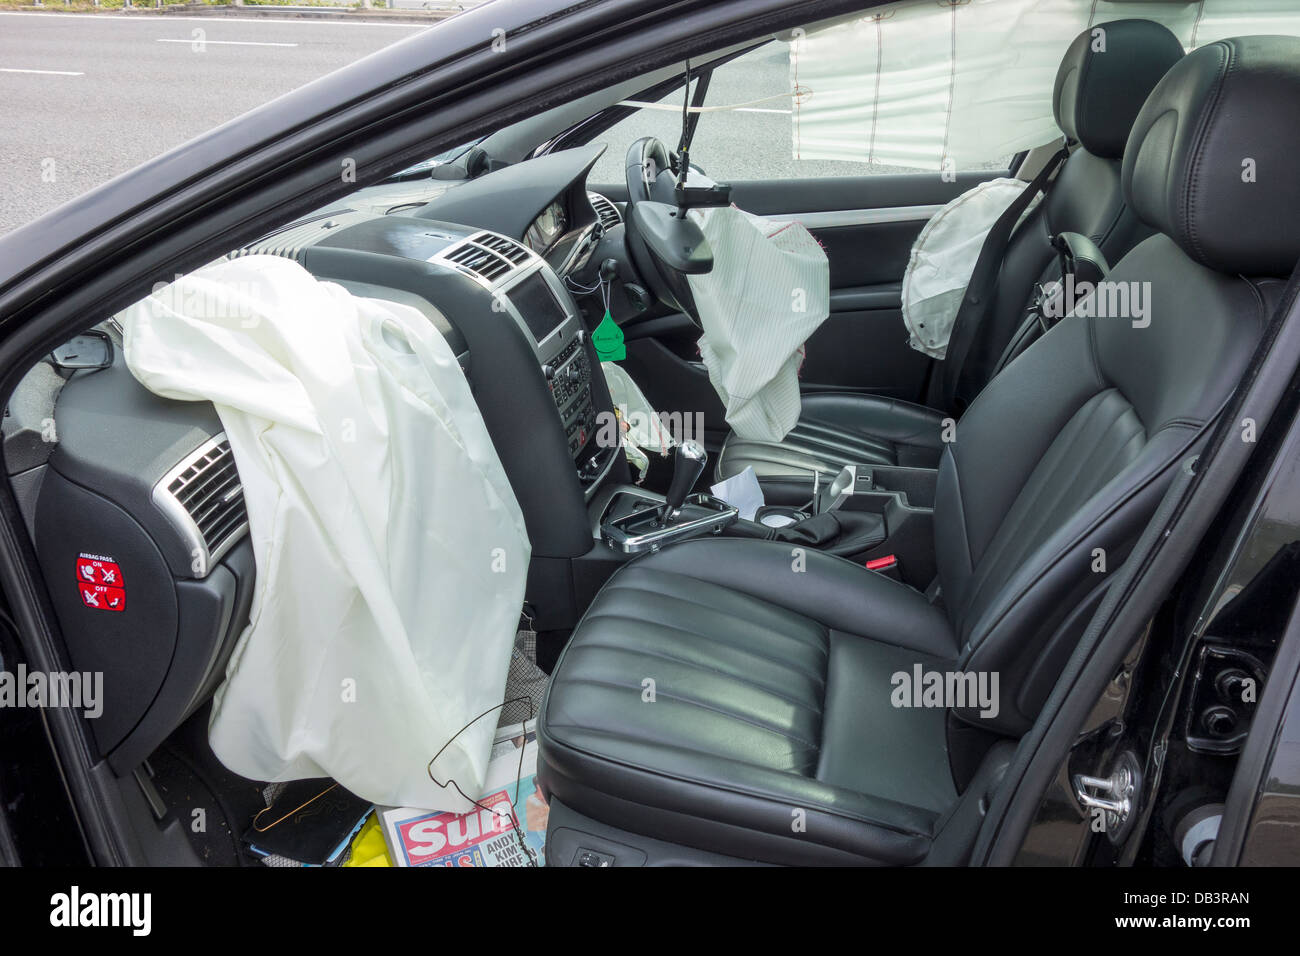 Motorway Accident High Speed Puncture Air Bags Deployed Saving Driver from Serious Injury. Stock Photo